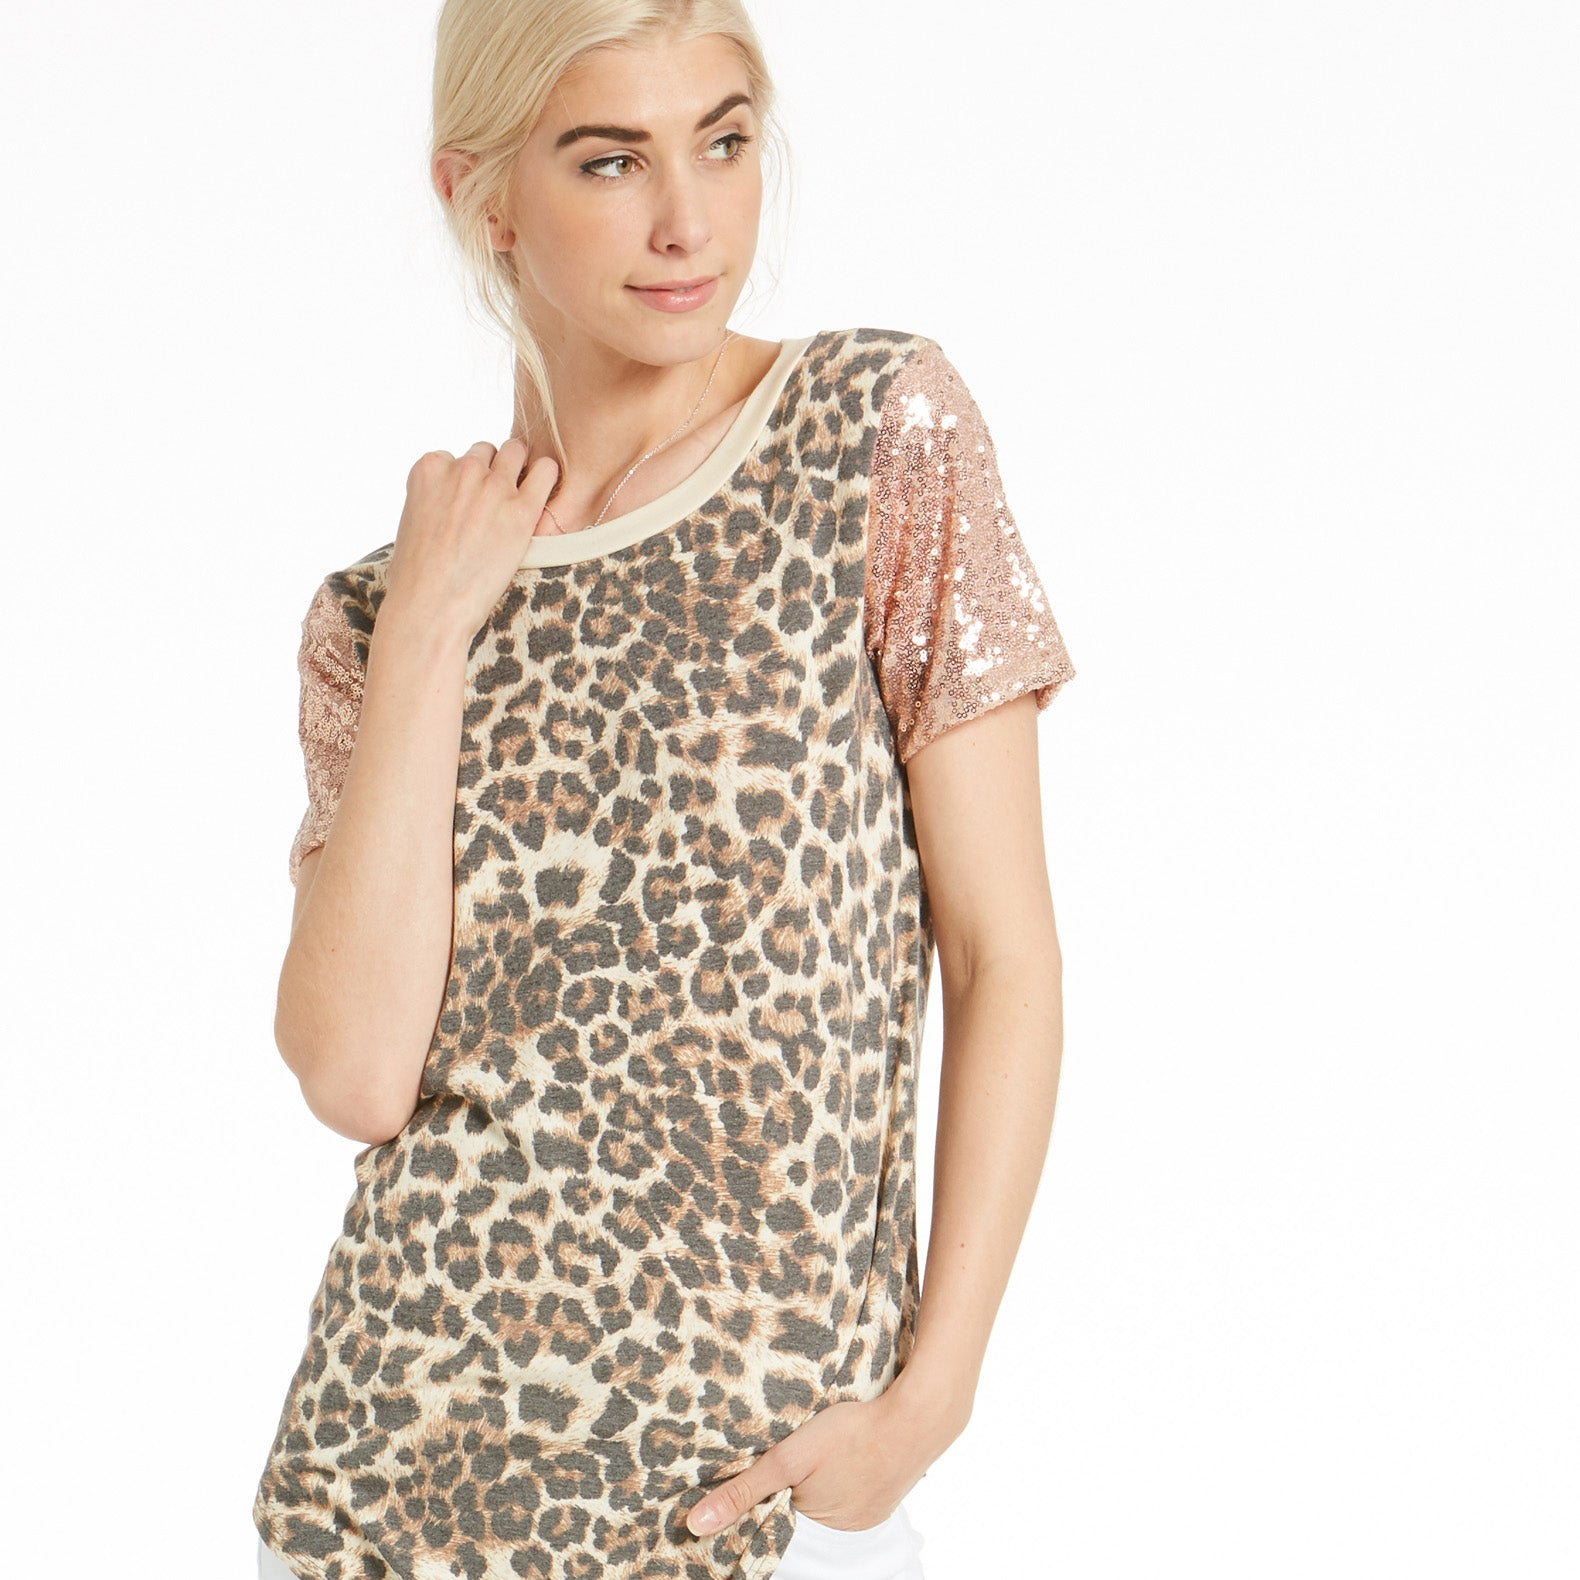 Glorious Sequin Animal Print Top - Love, Kuza